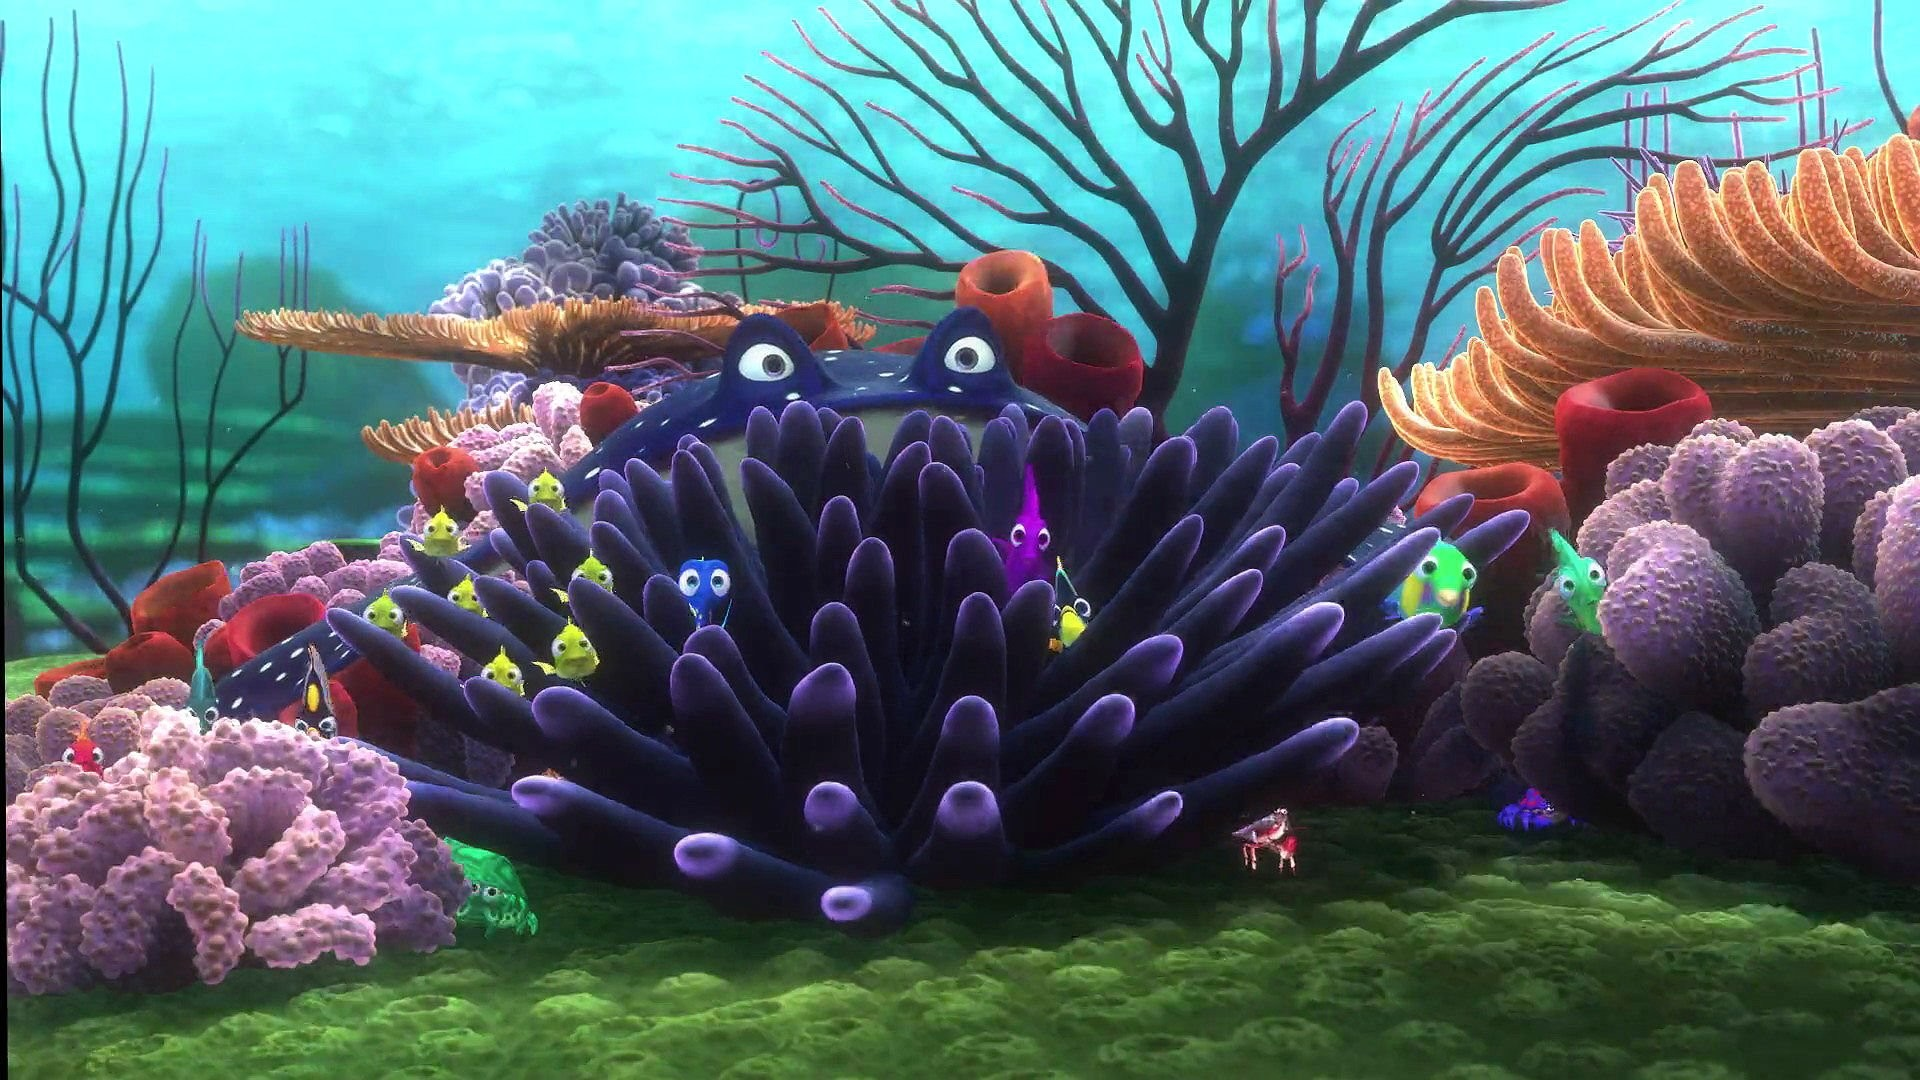 Sfondo balena marlin dory gratis as well CGluLWRvcnktZmluZGluZy1uZW1v likewise Finding Nemo Wallpaper furthermore Sea Turtle Wallpaper 19 besides Disney Fairies Spring Valley Wallpaper Xl. on disney nemo desktop backgrounds